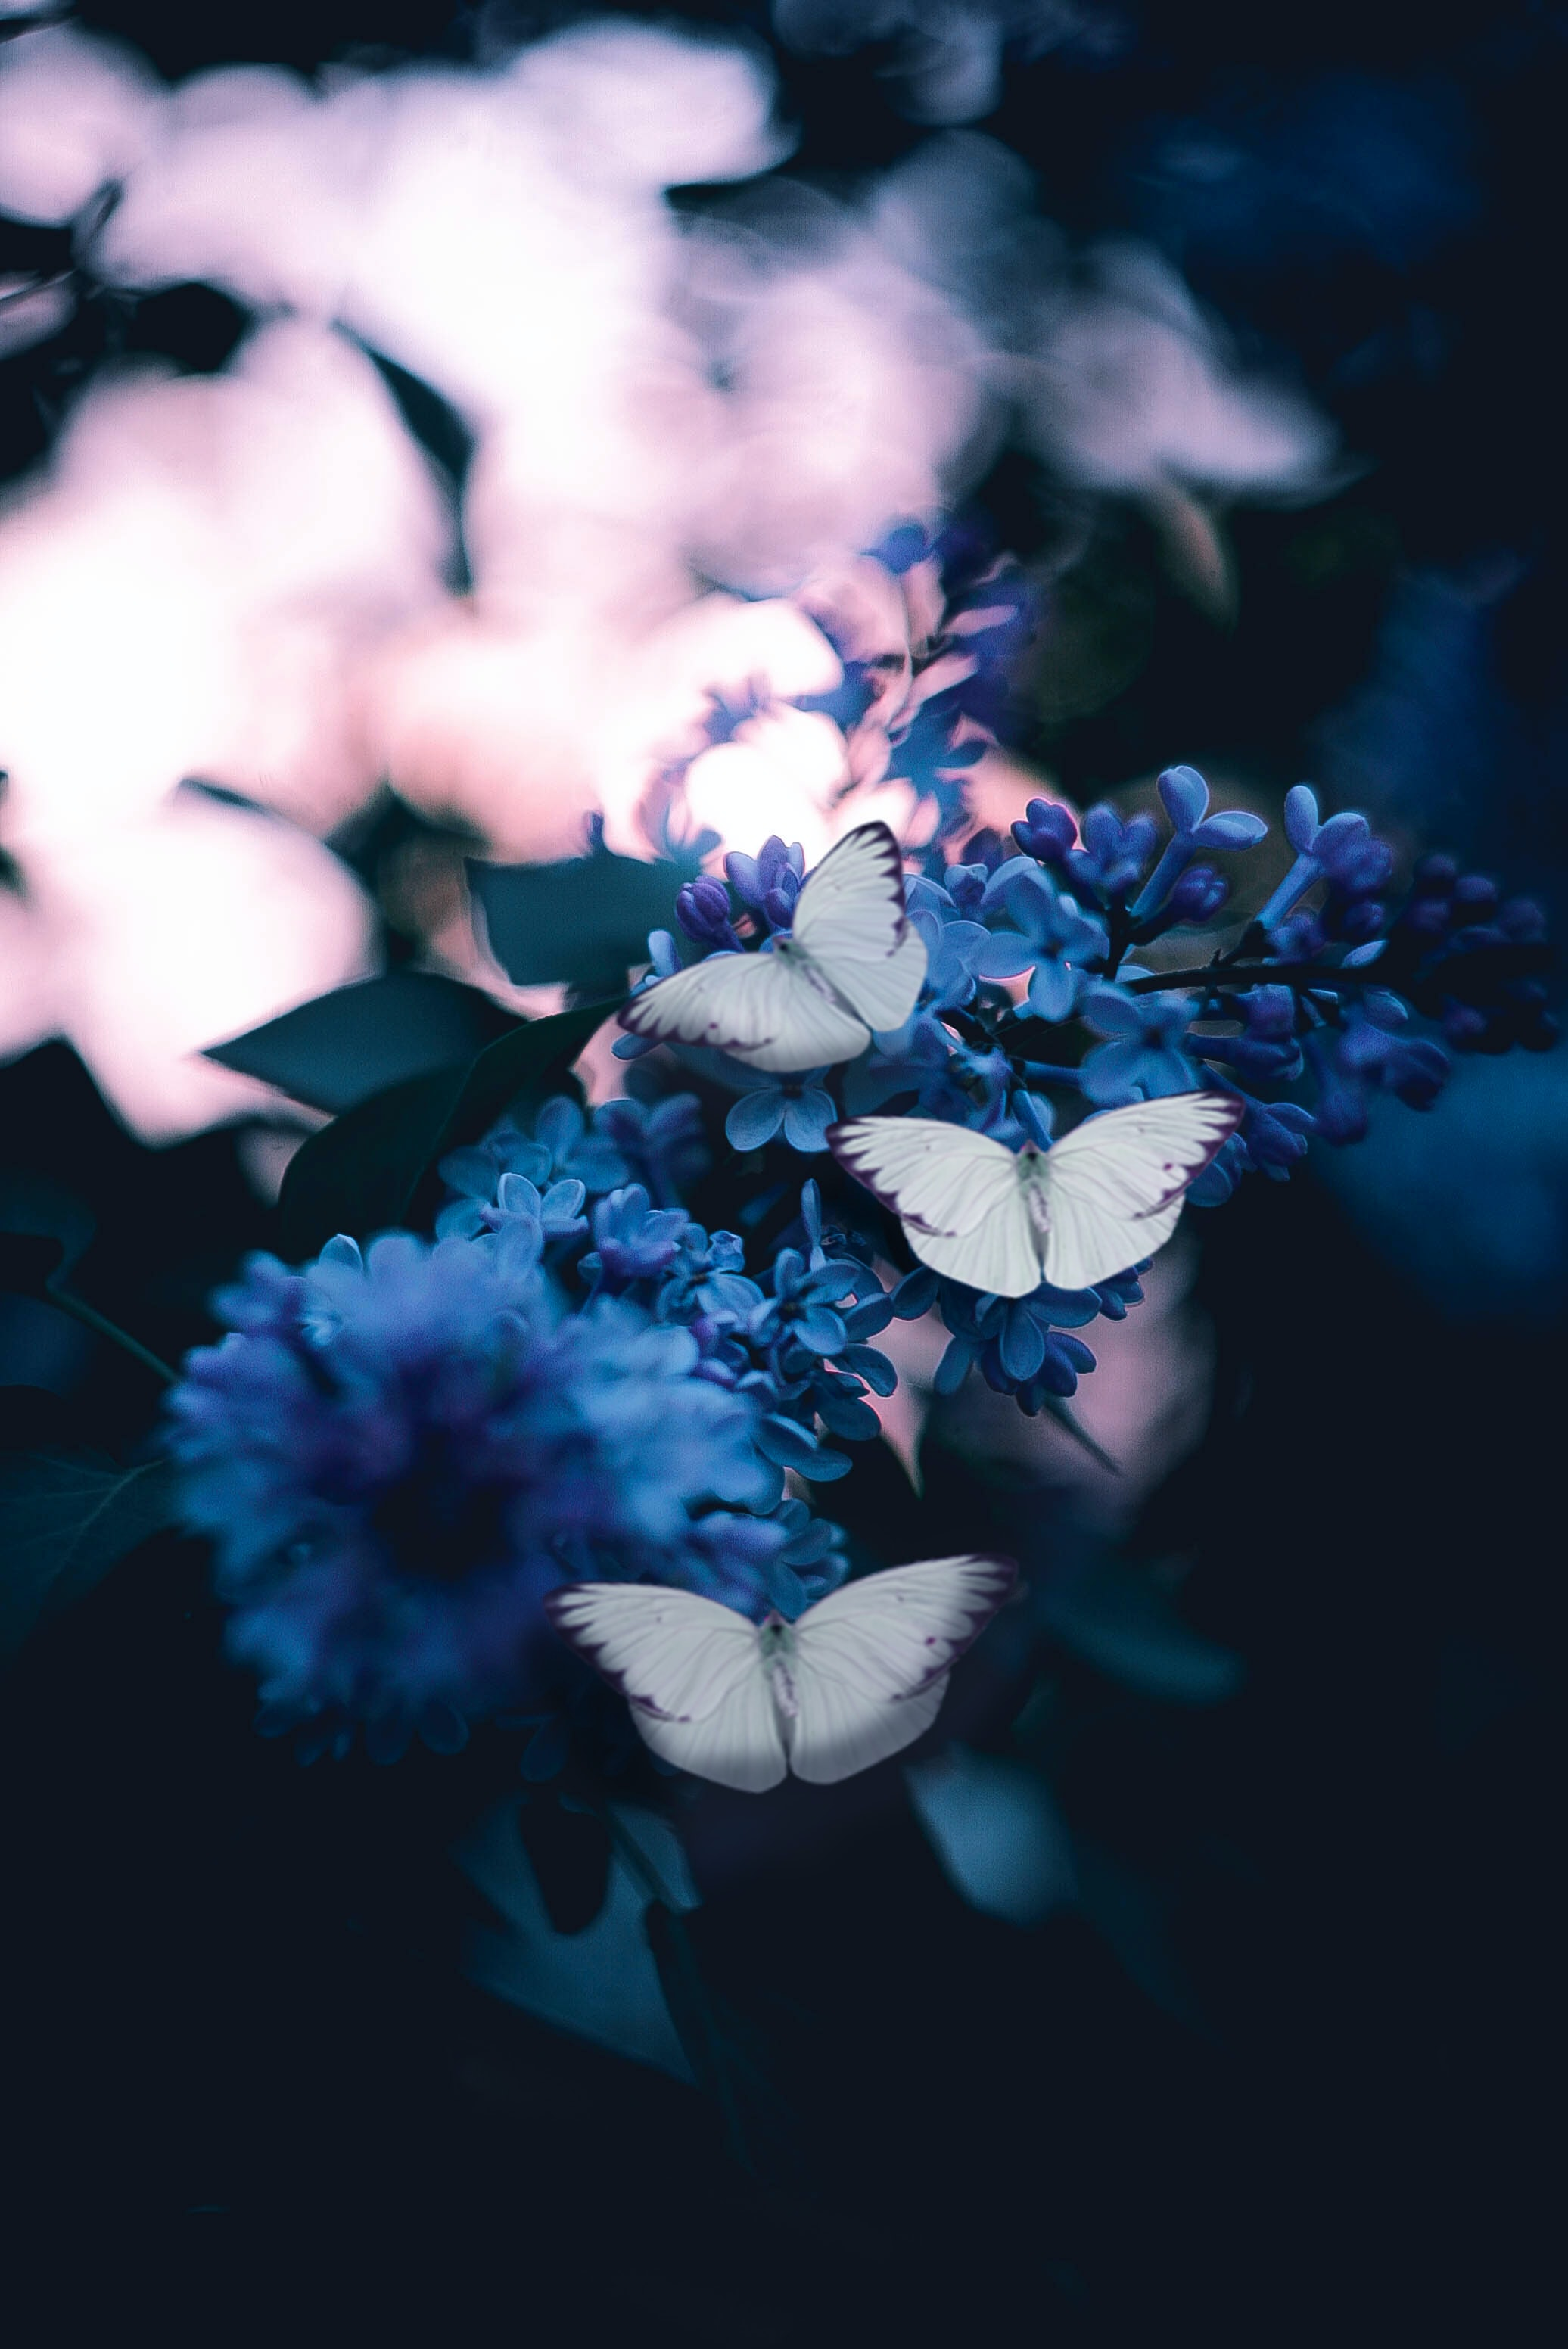 Whatsapp Dp Flowers With Butterfly , HD Wallpaper & Backgrounds